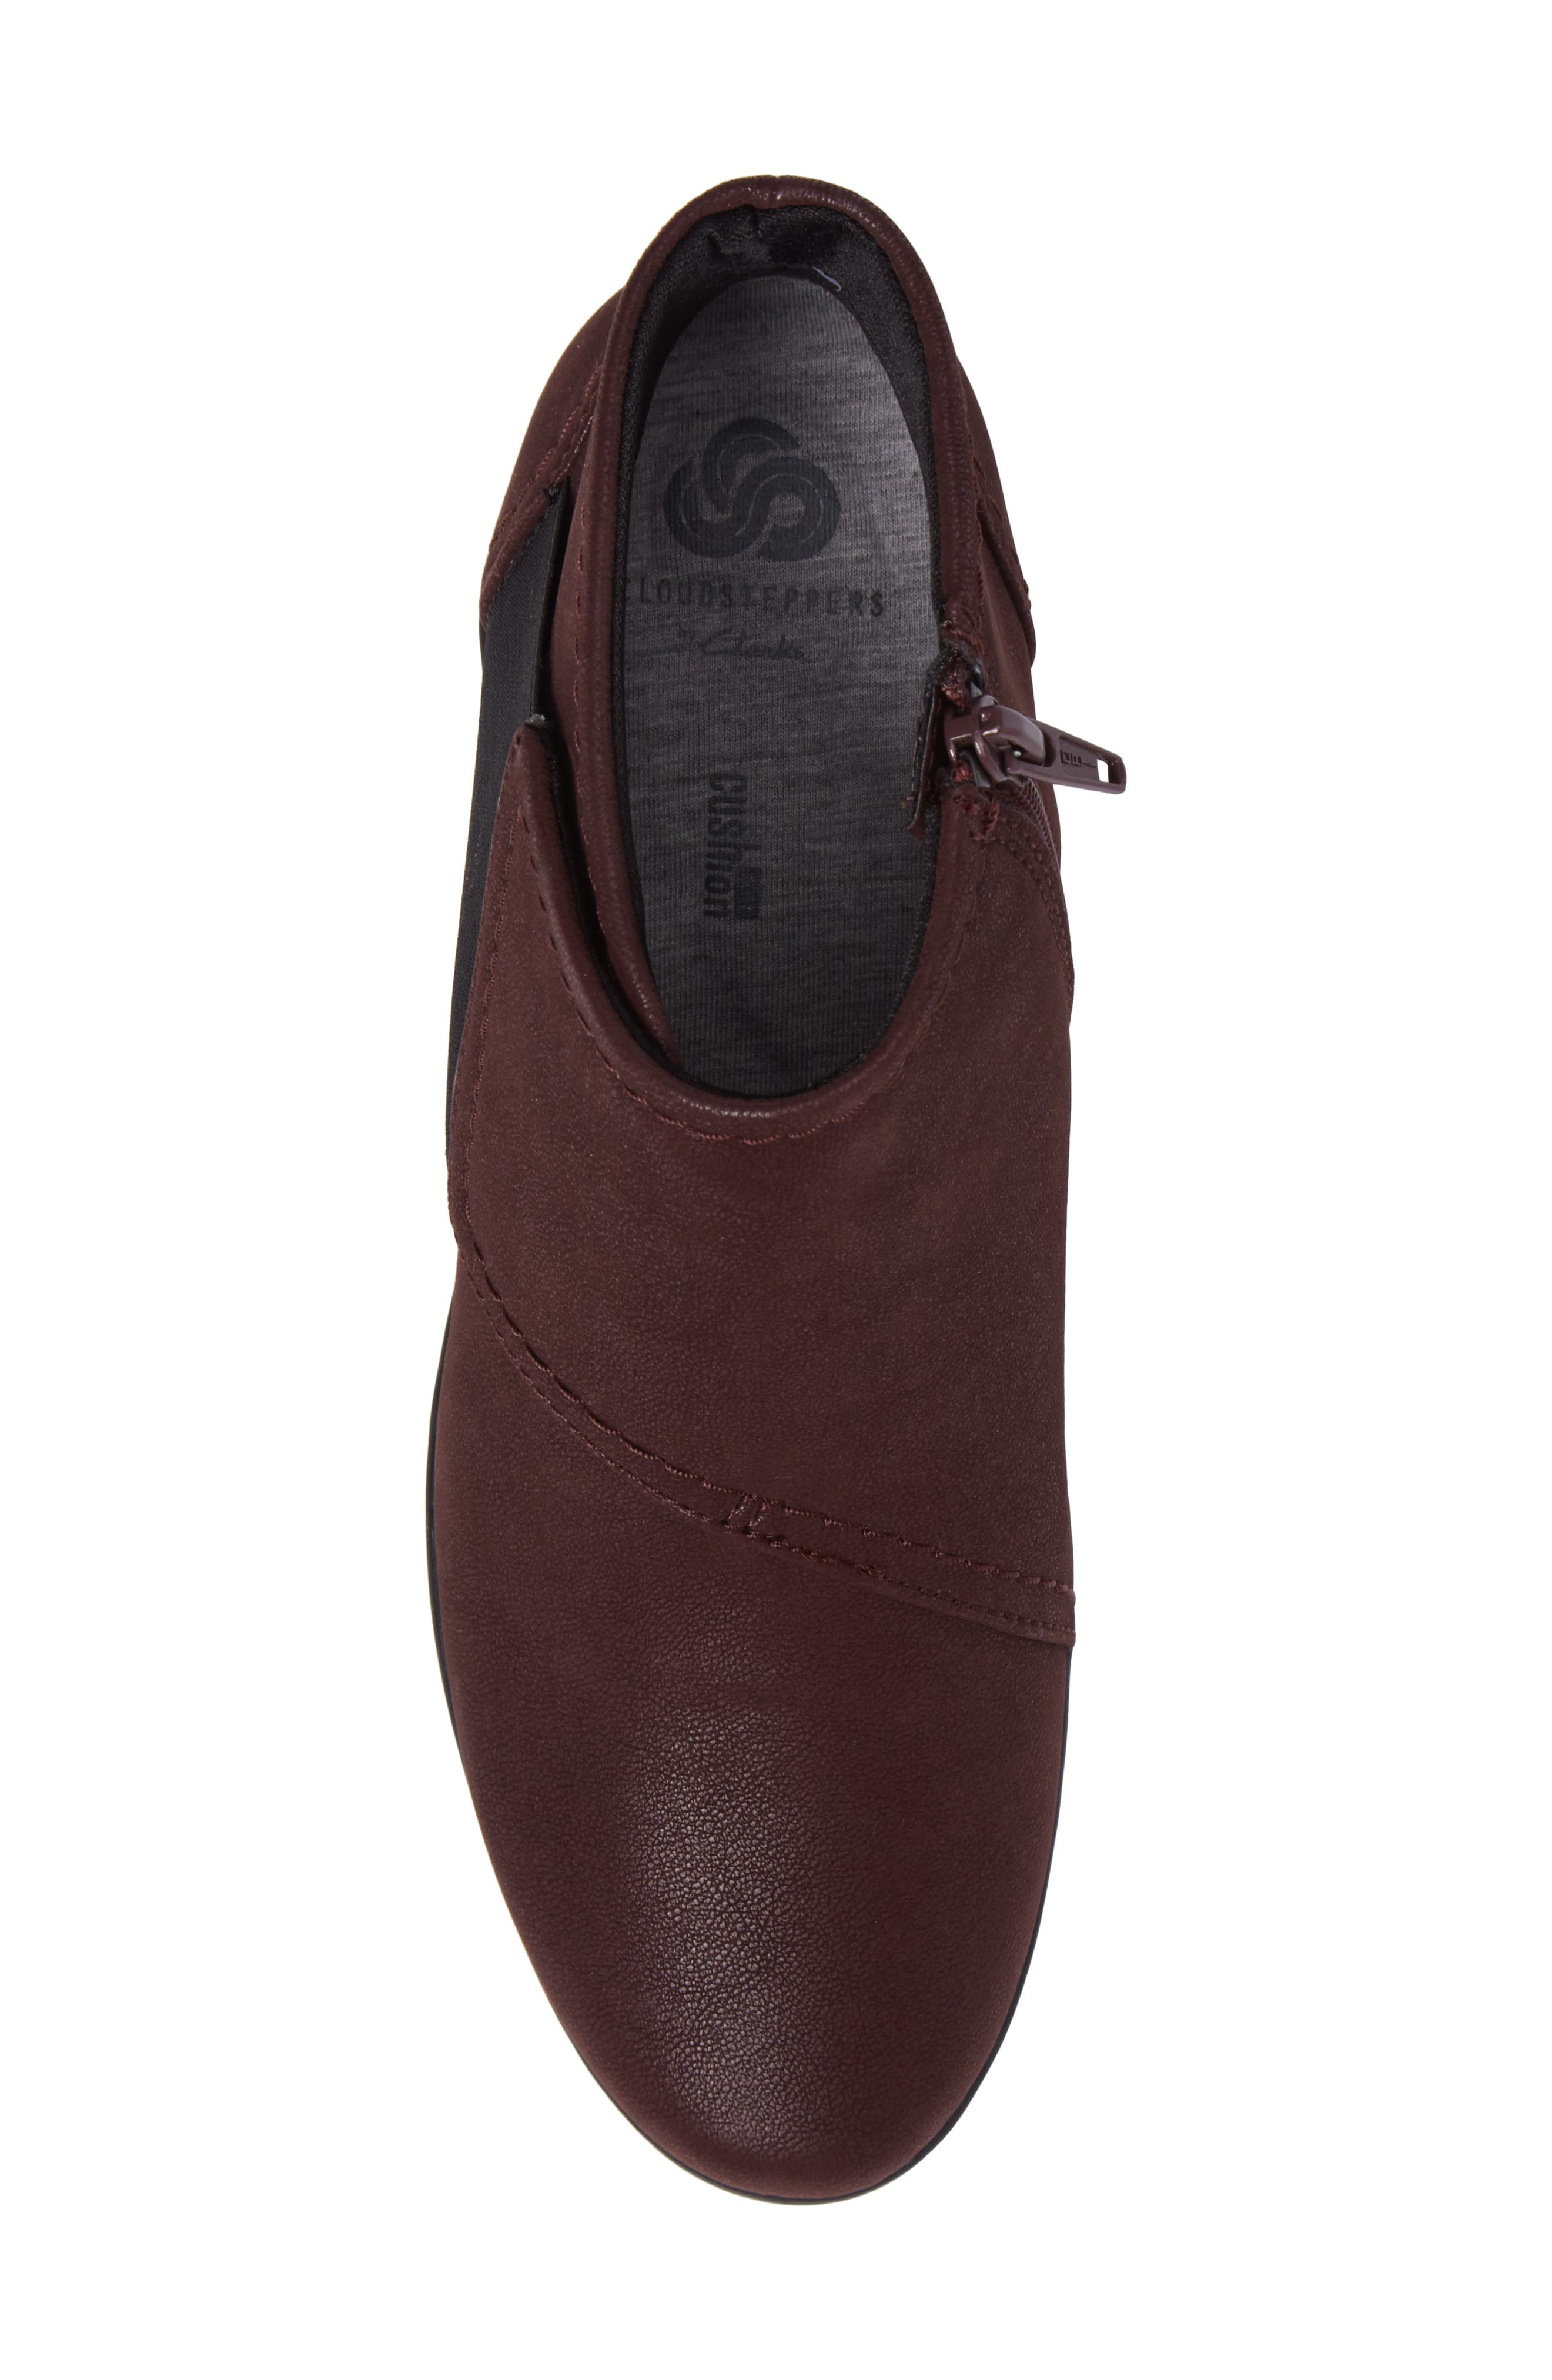 Caddell Rush Bootie,                             Alternate thumbnail 5, color,                             Burgundy Leather